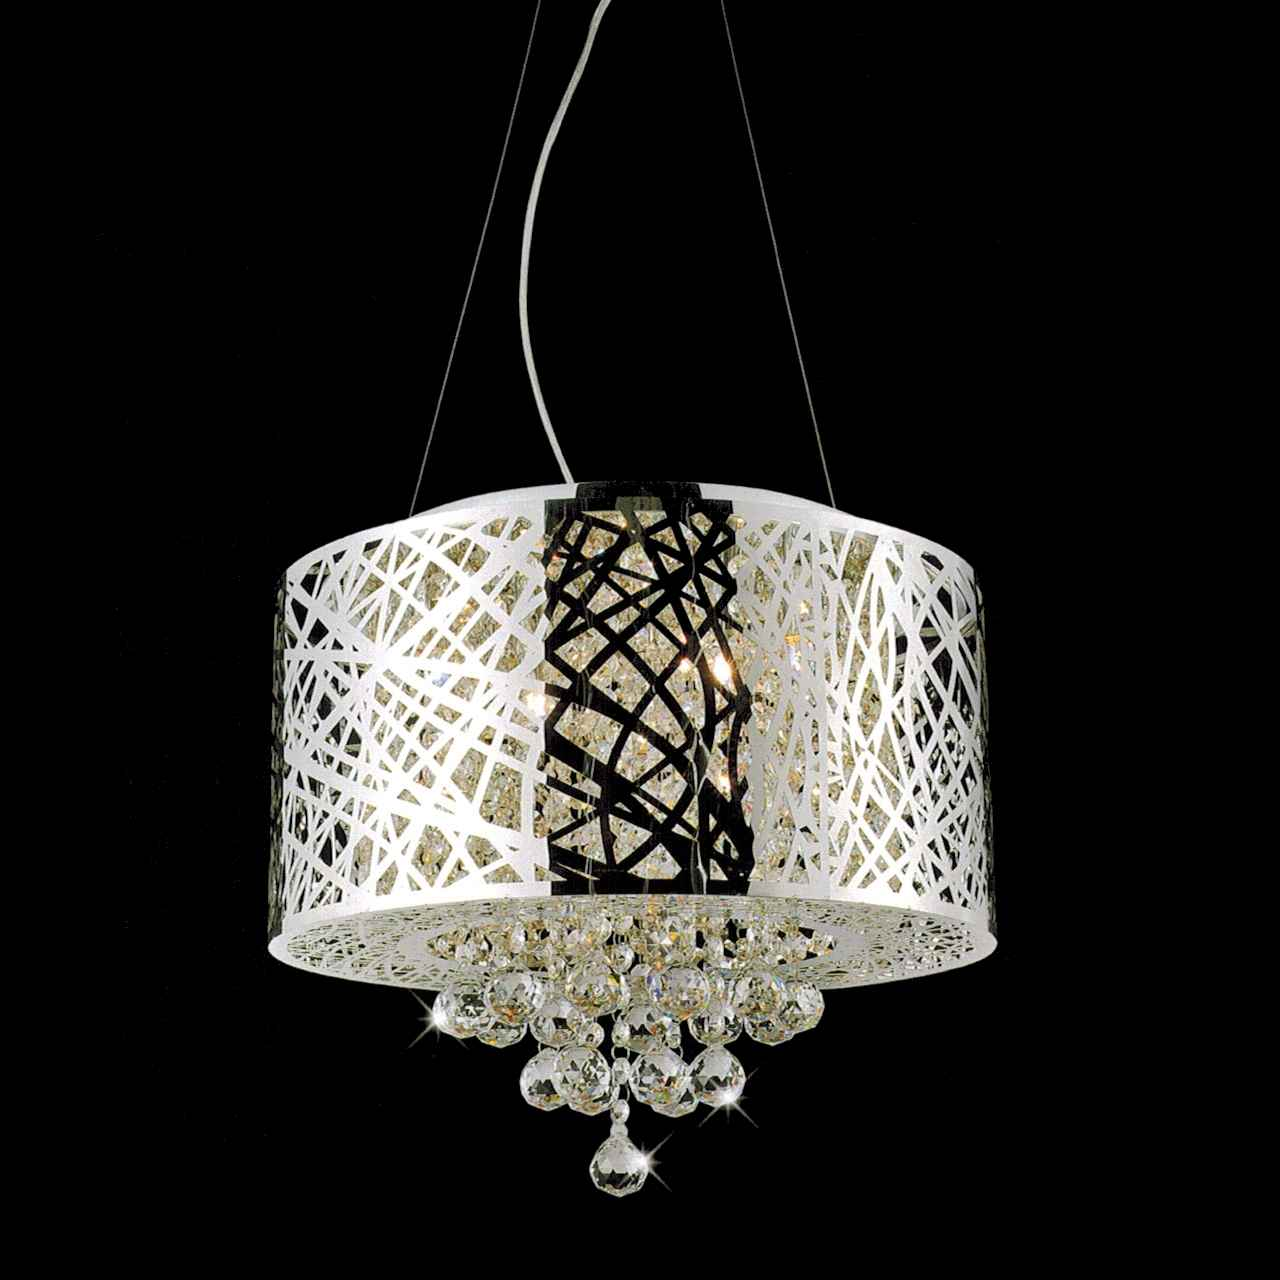 Brizzo lighting stores 16 web modern laser cut drum shade crystal picture of 16 web modern laser cut drum shade crystal round pendant chandelier stainless steel arubaitofo Images